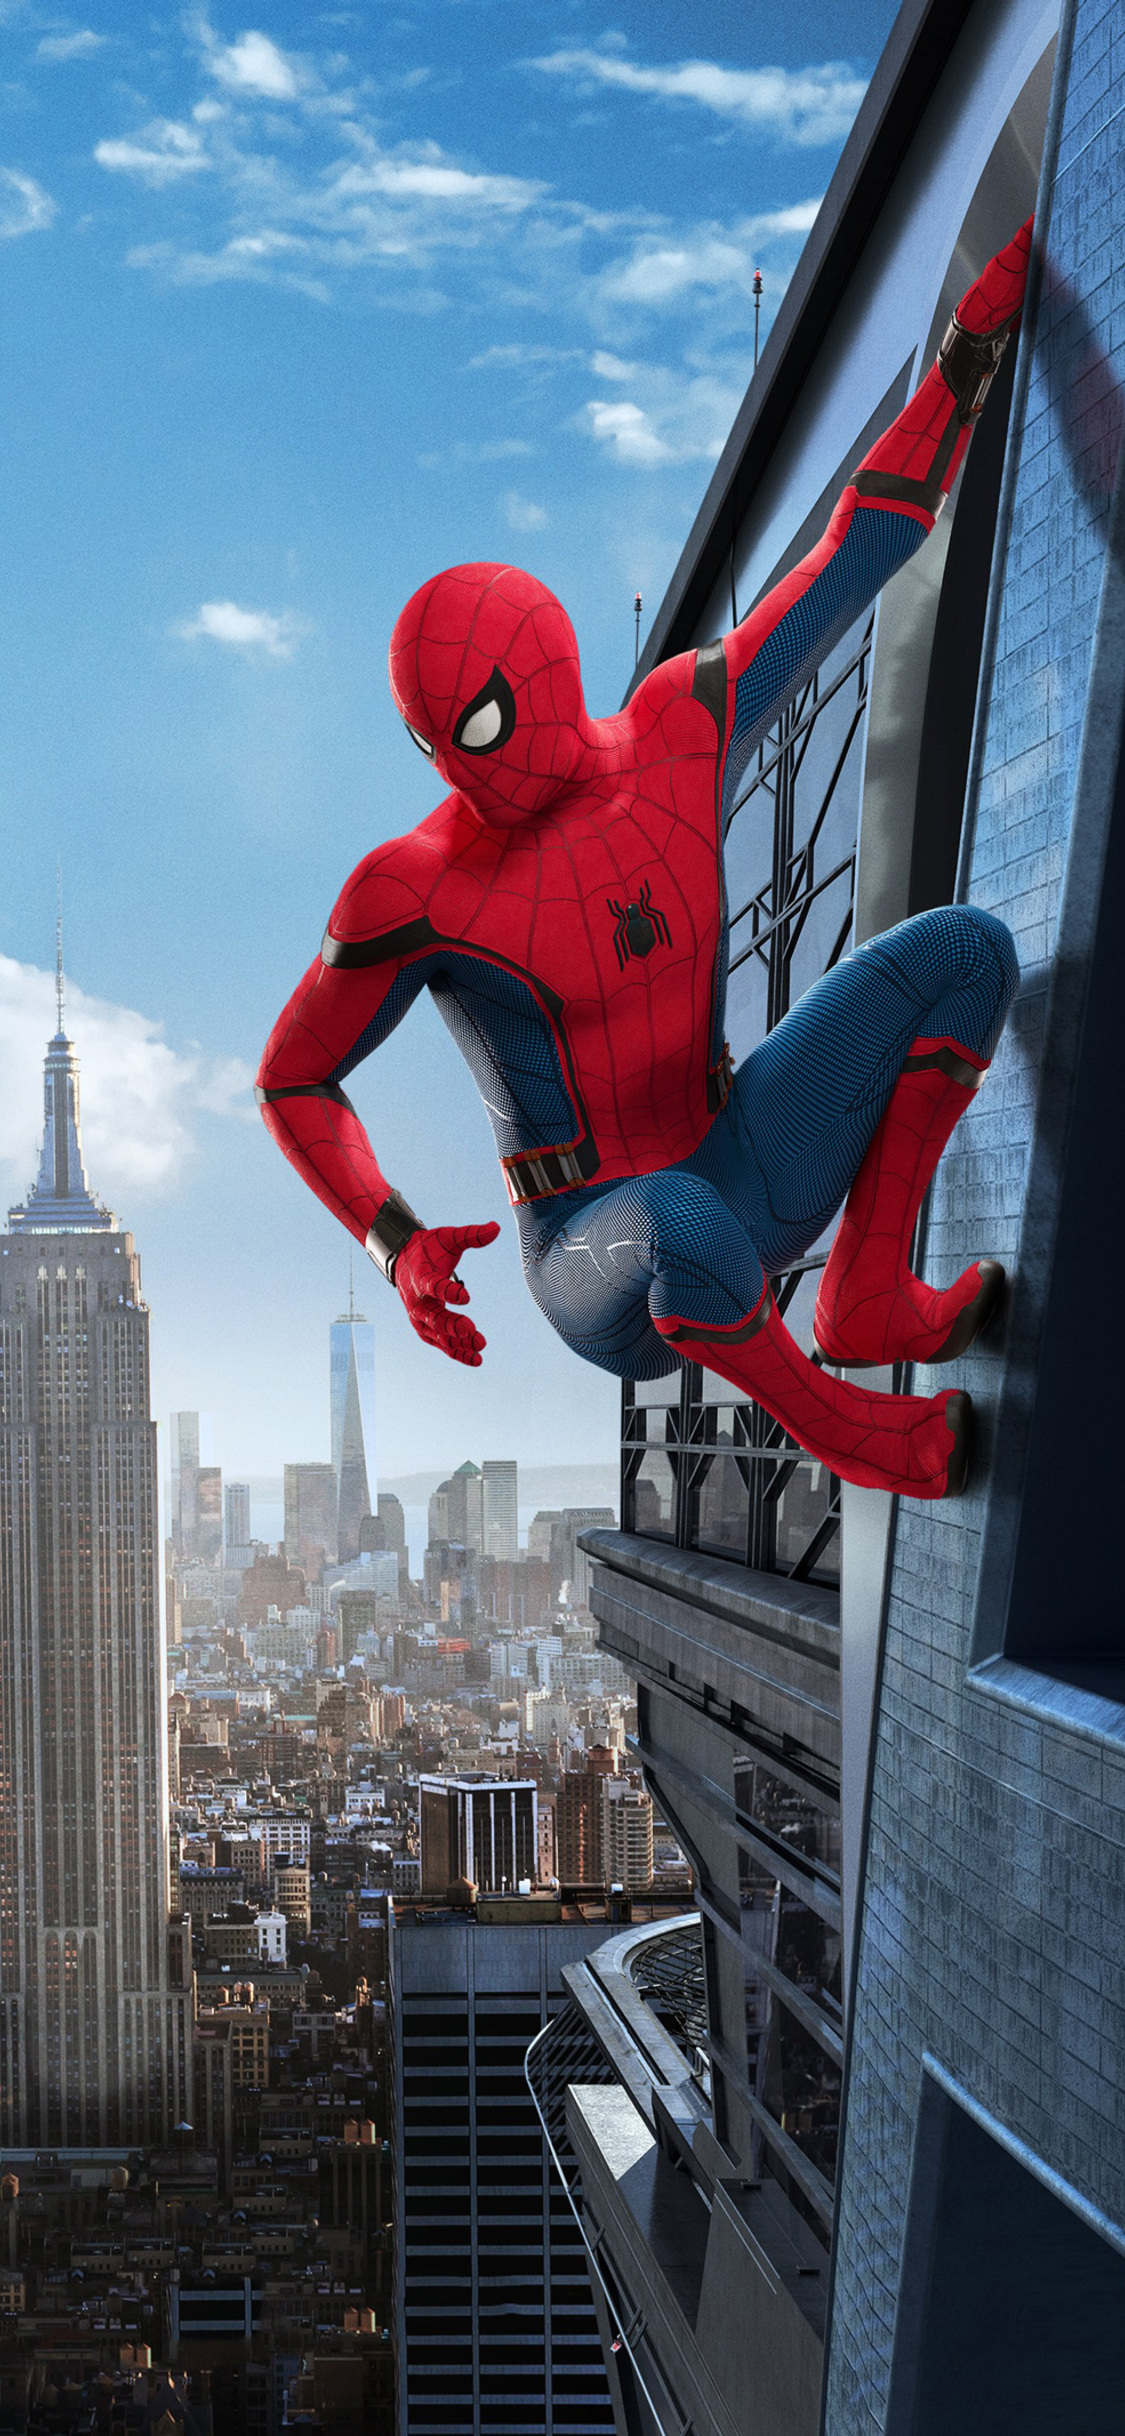 1125x2436 Spiderman Homecoming Iphone XS,Iphone 10,Iphone ...